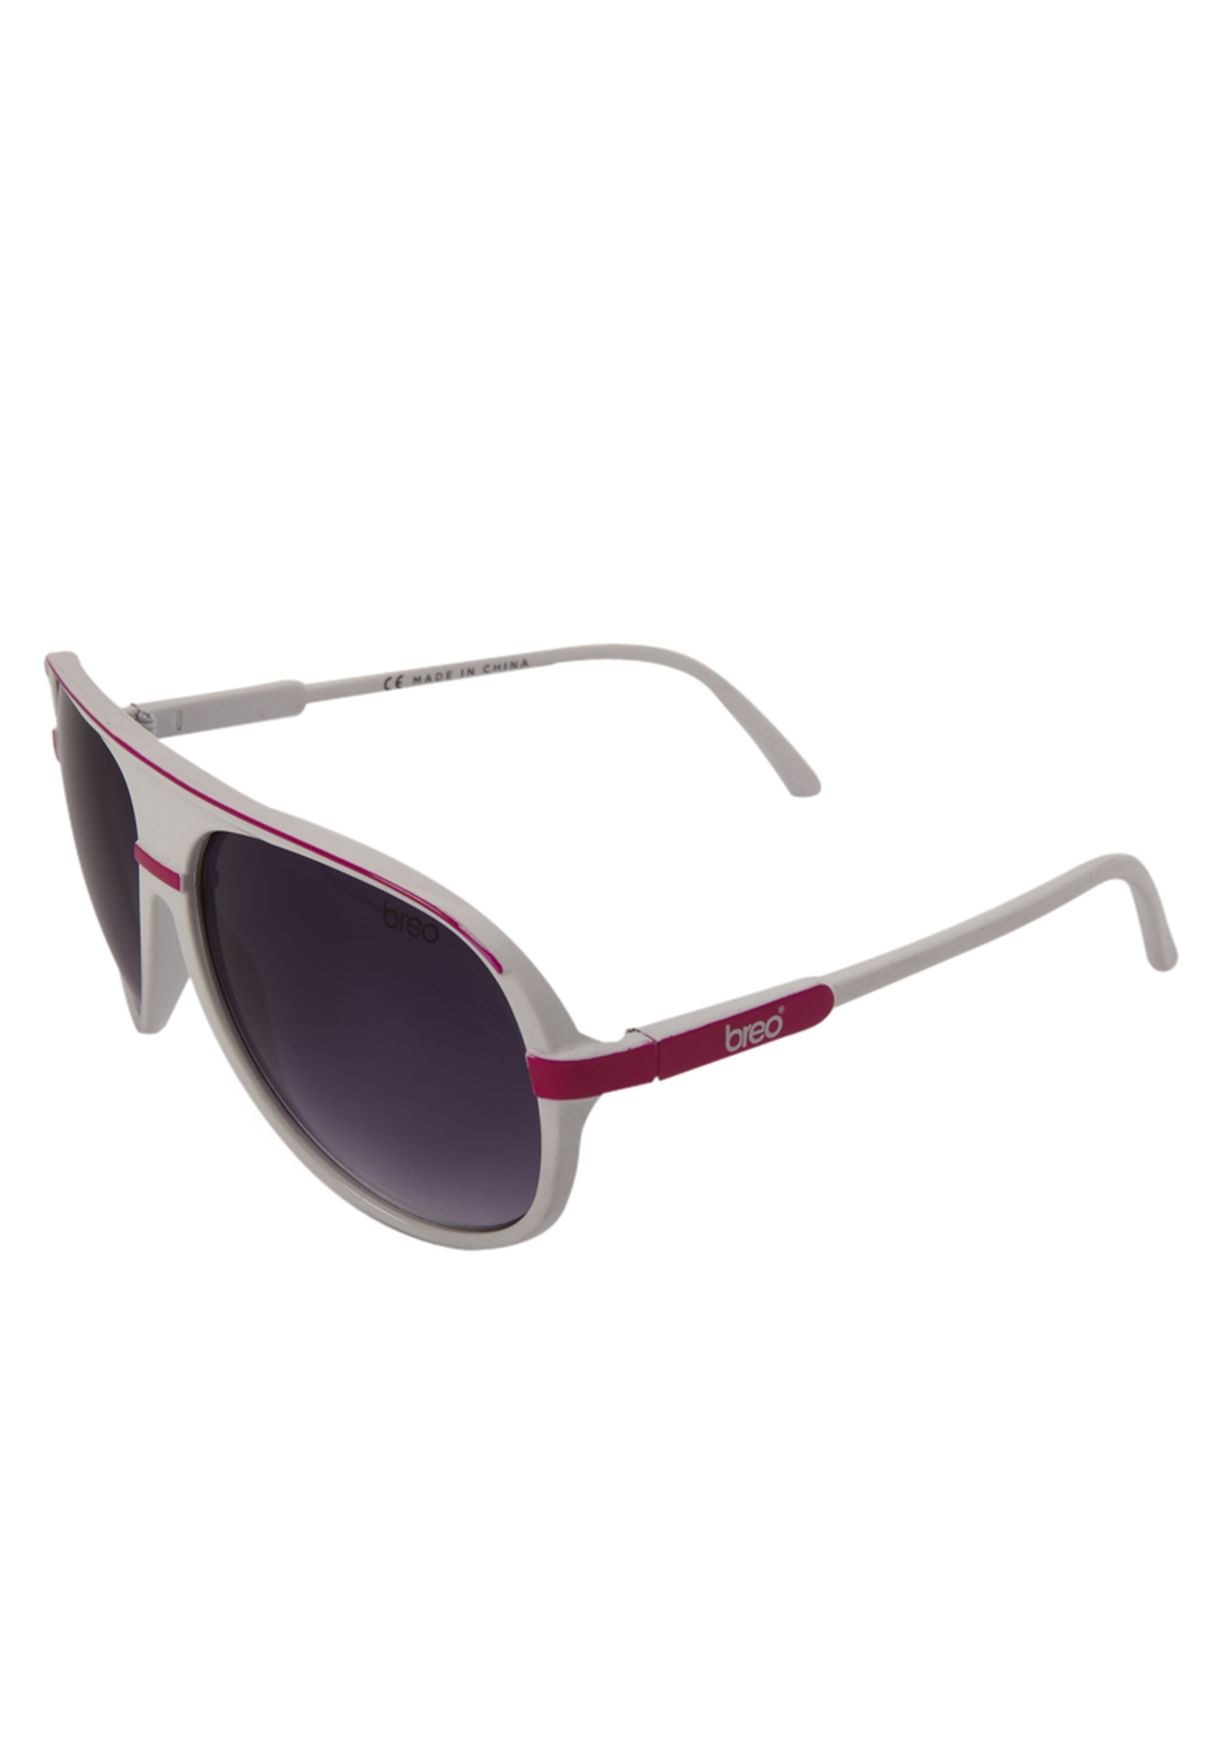 Shop Breo white Trendy Sunglasses for Women in Saudi - BR761AC13YKC a20f76a3ad667